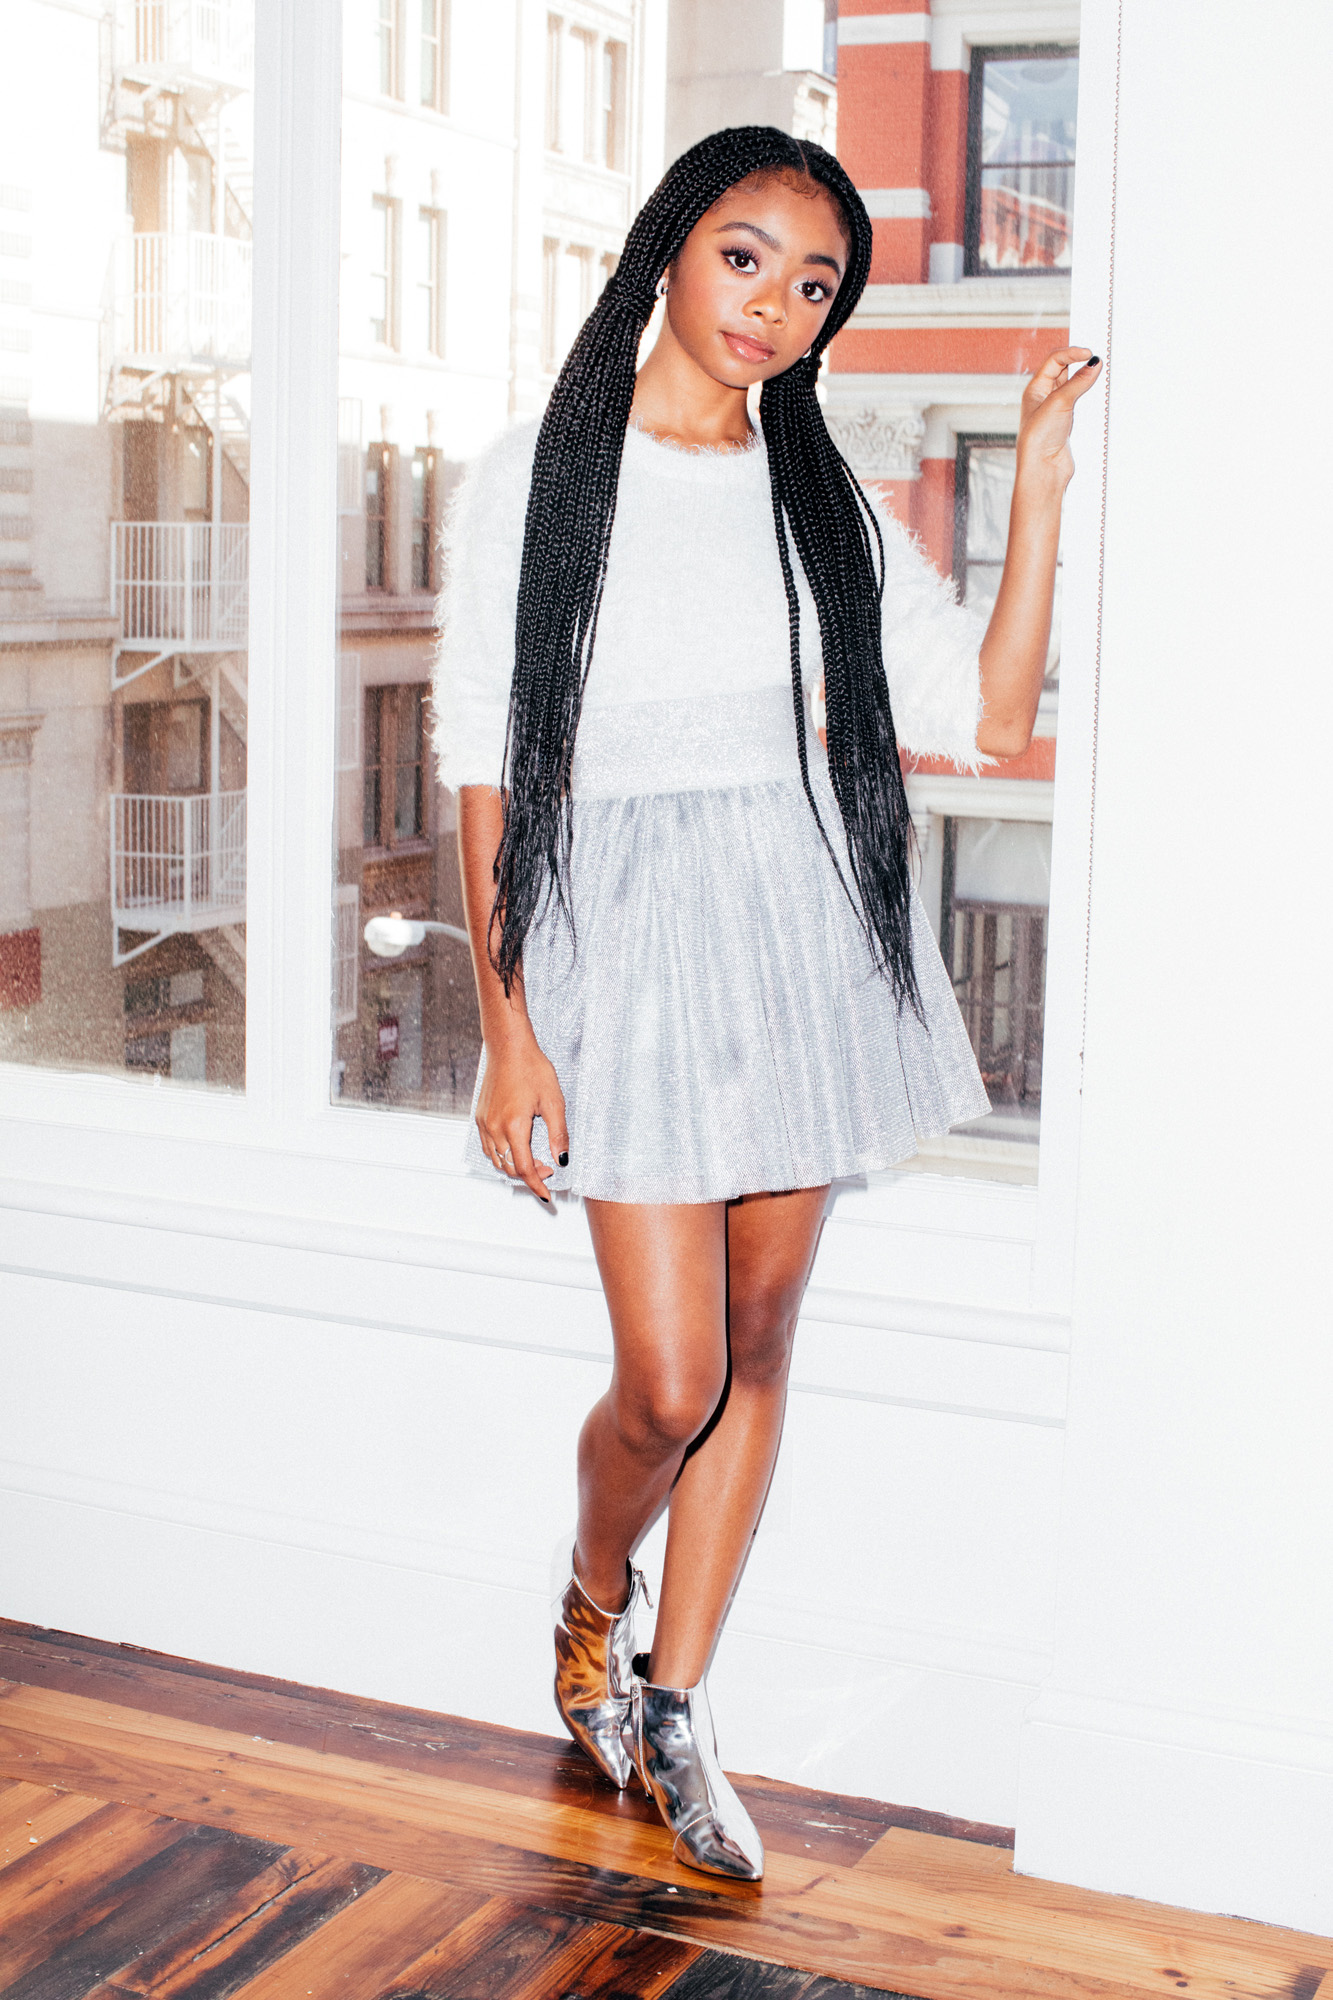 Skai Jackson Talks Her Personal Style Staying Positive